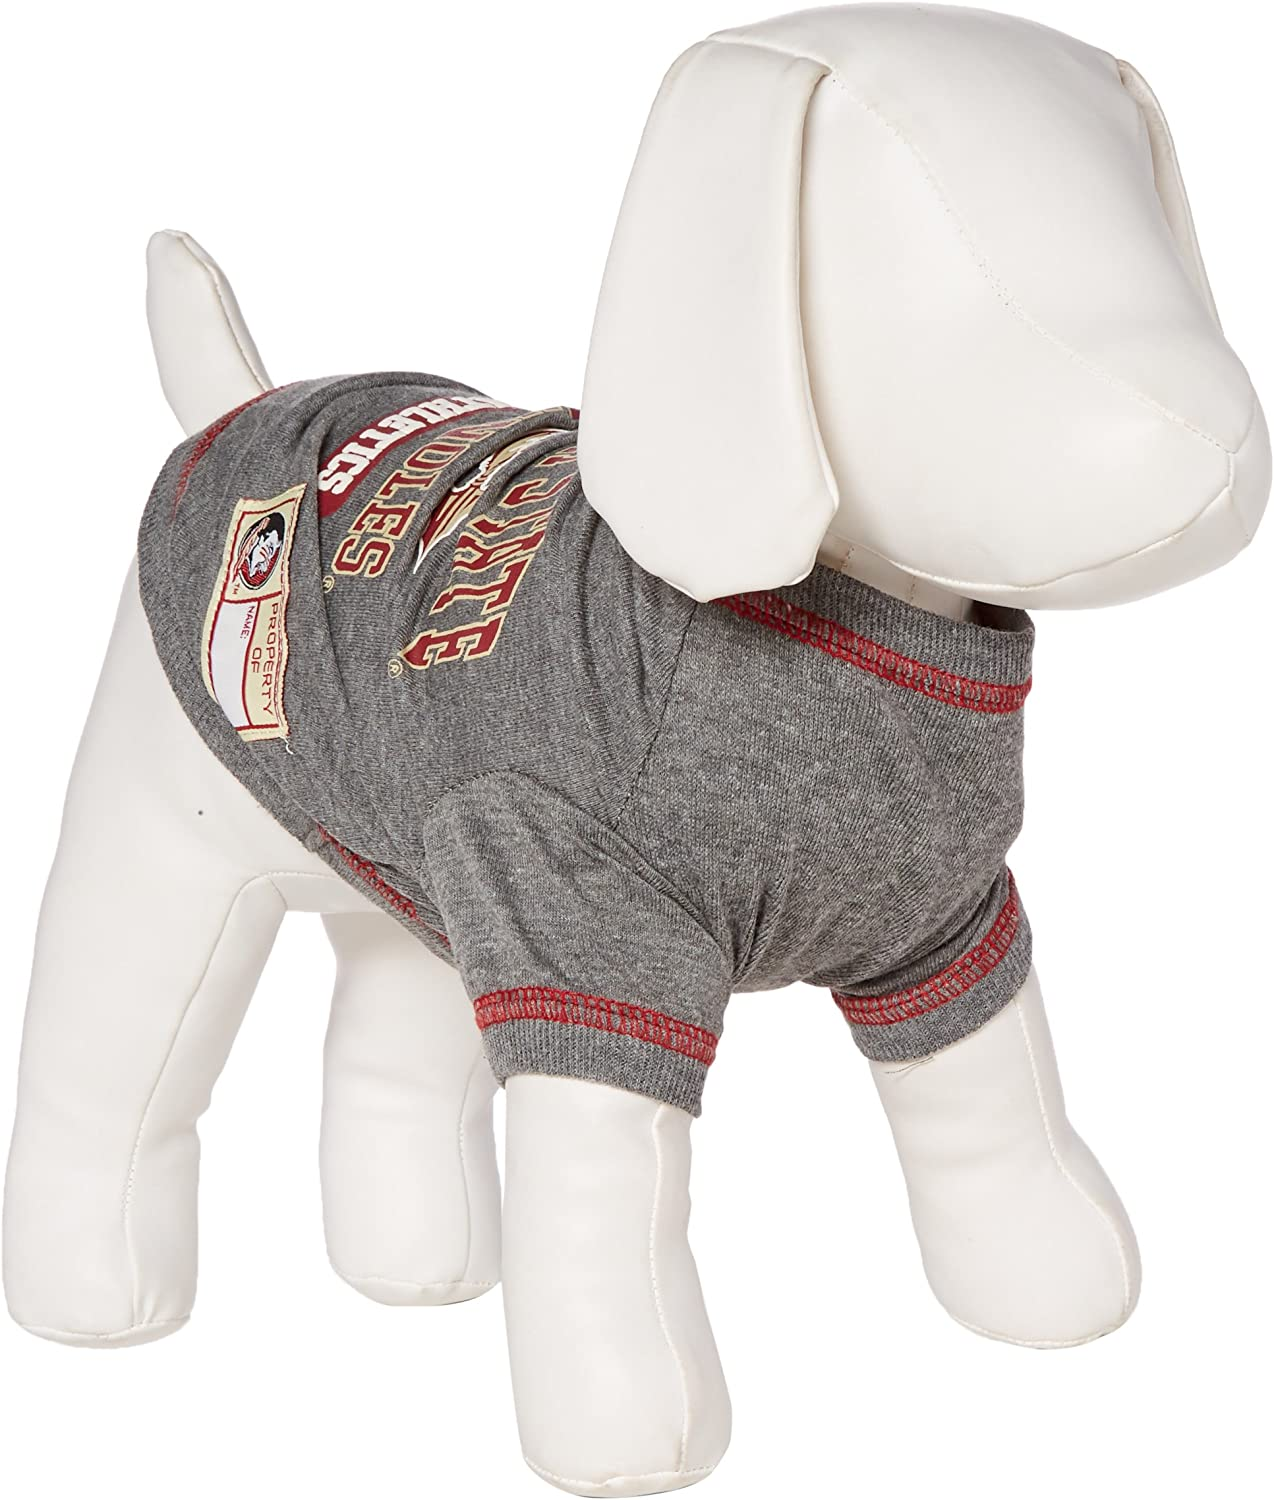 NCAA Louisiana Lafayette Ragin Cajuns All Weather-Resistant Protective Dog Outerwear XX-Small